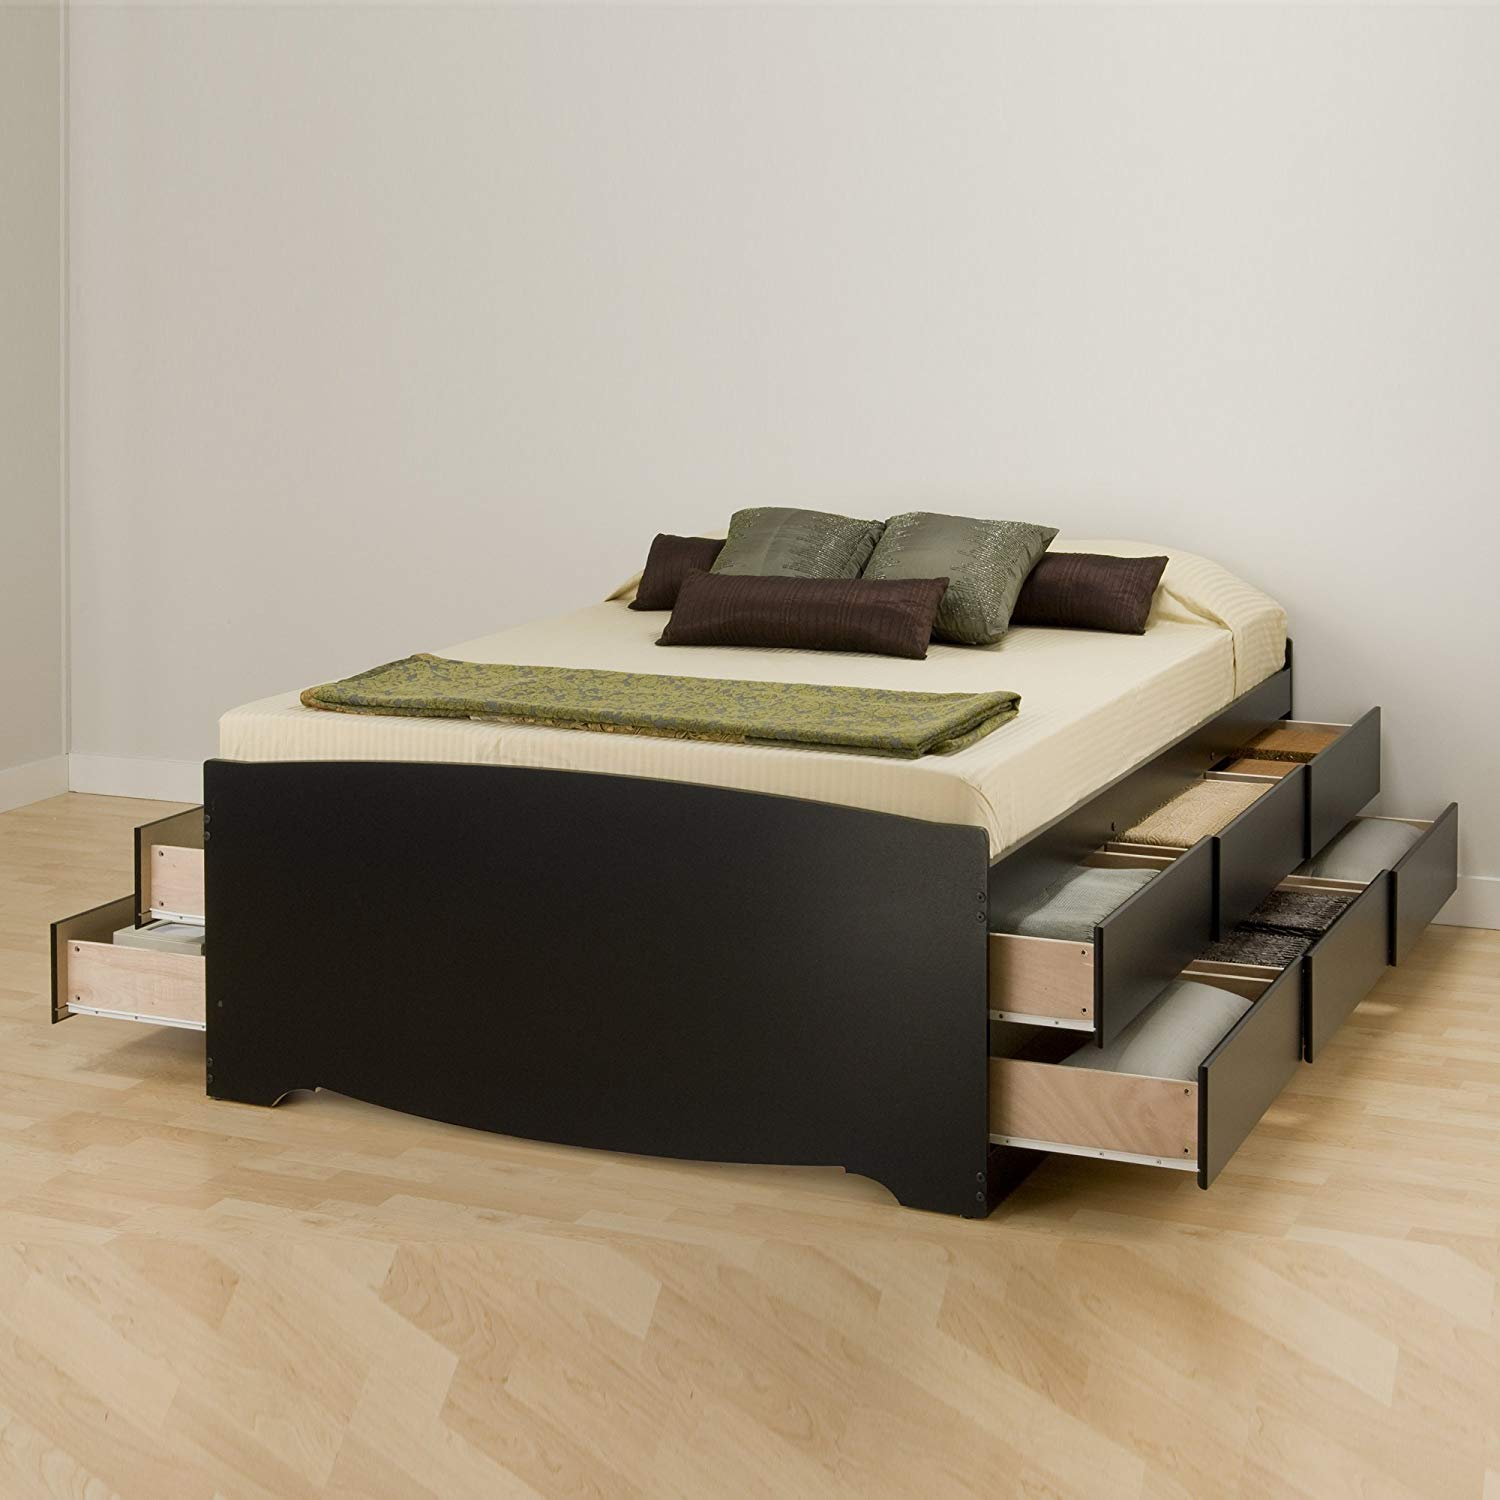 Image of: 6 Drawer Storage Bed Frame